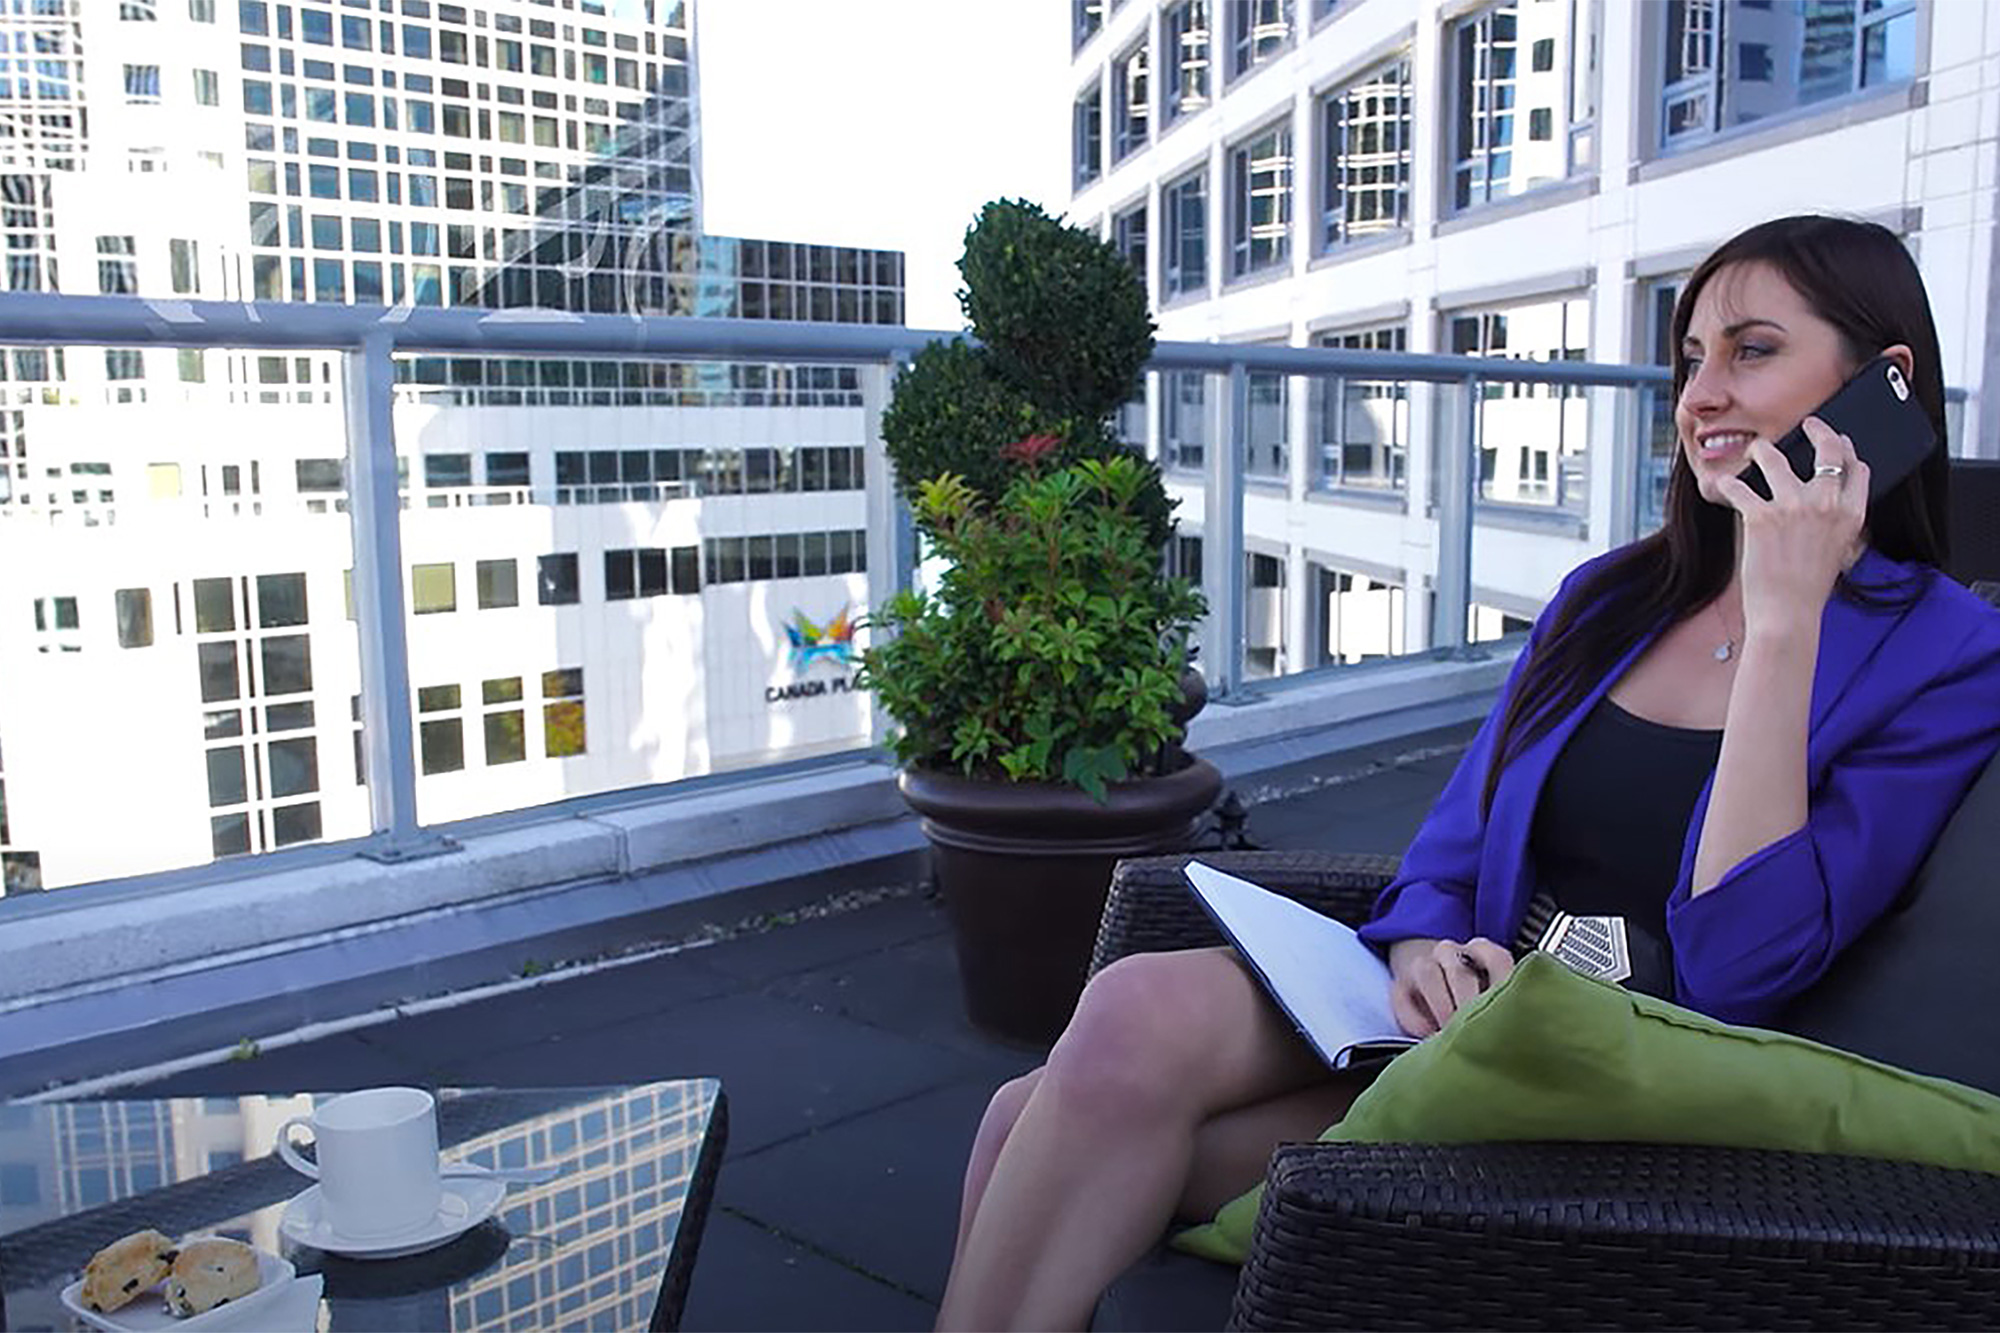 Meeting planner at Fairmont Waterfront